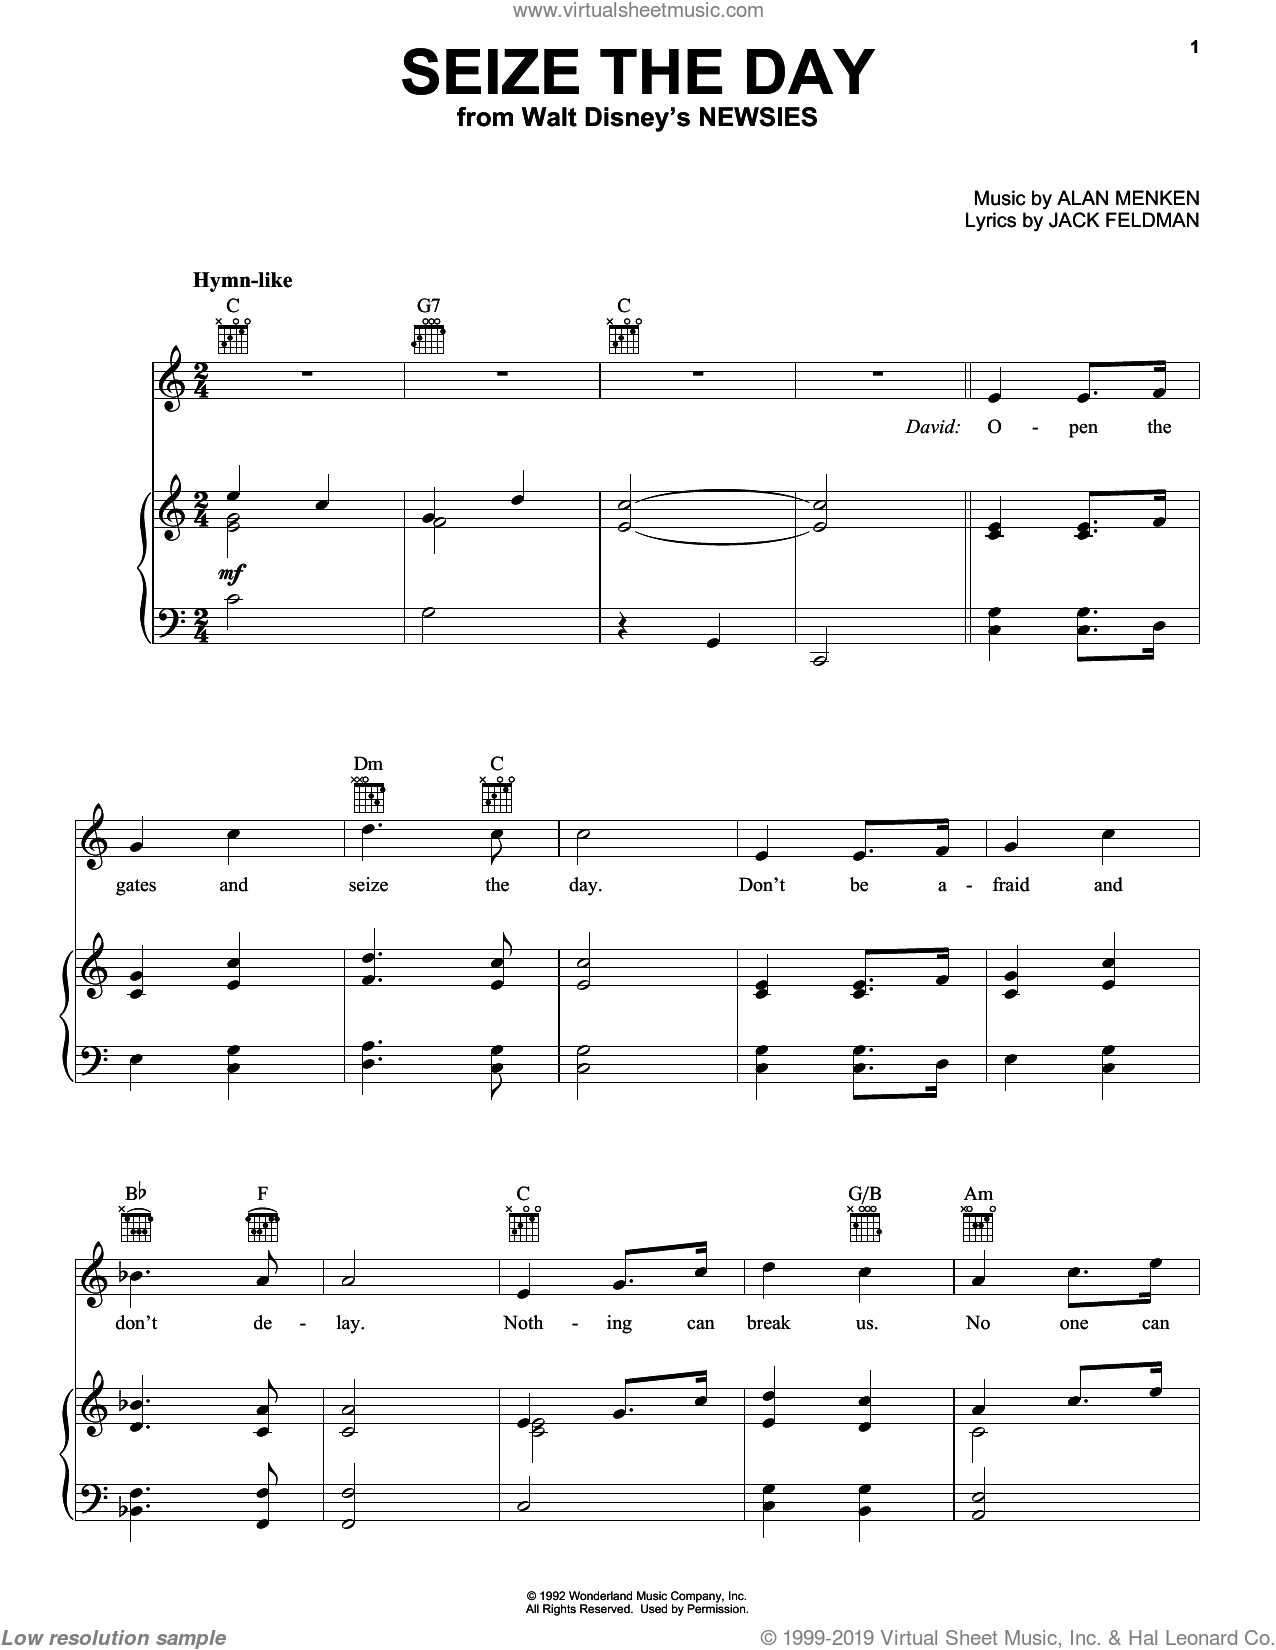 Seize The Day sheet music for voice, piano or guitar by Jack Feldman